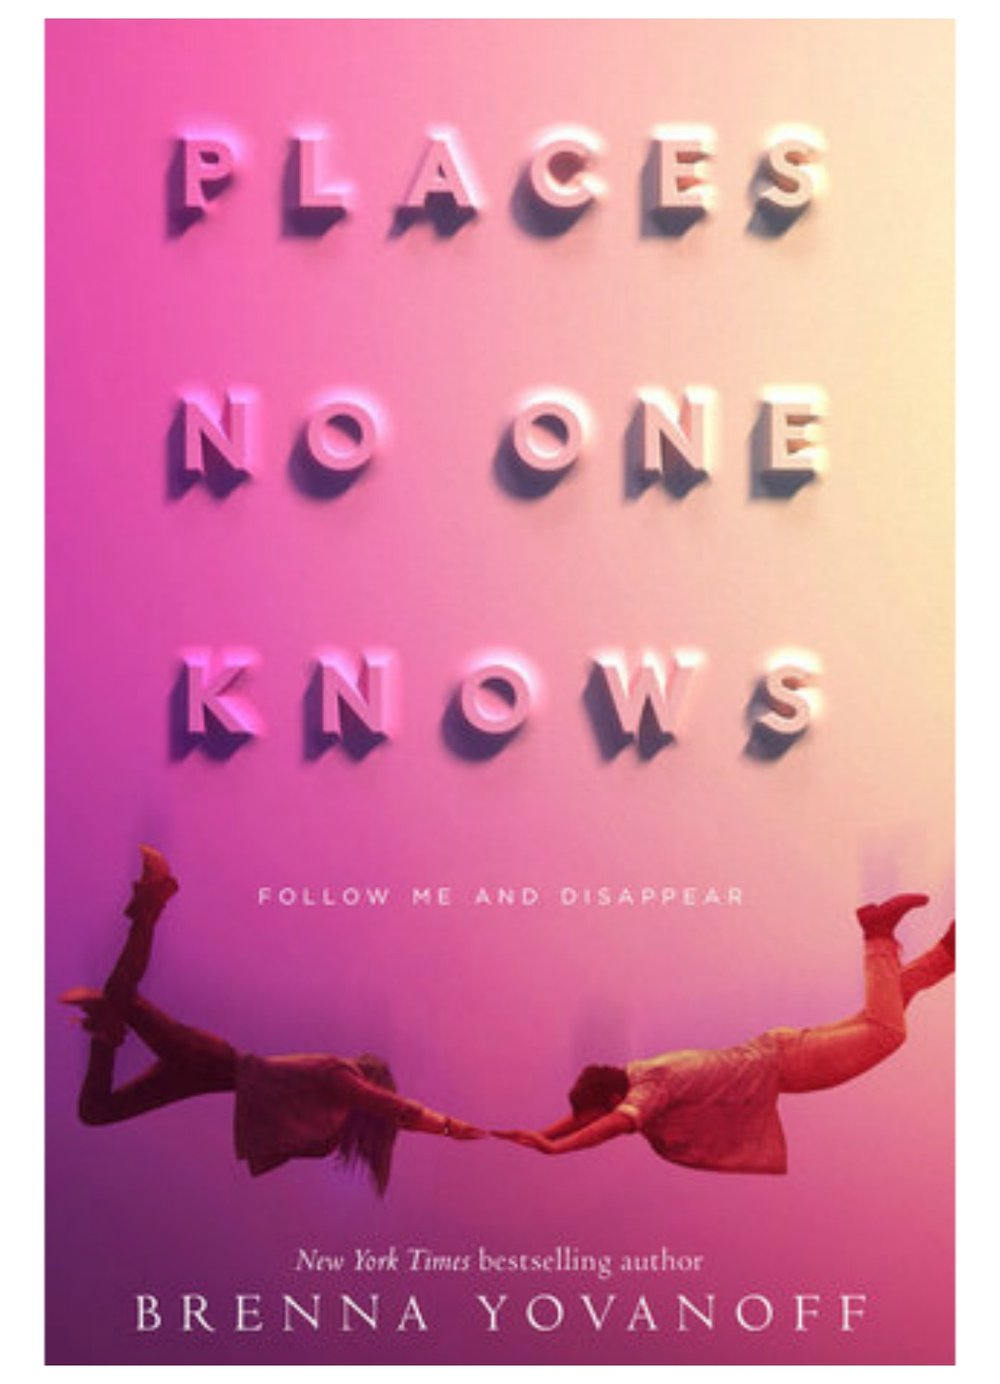 PLACES NO ONE KNOWS by Brenna Yovanoff.